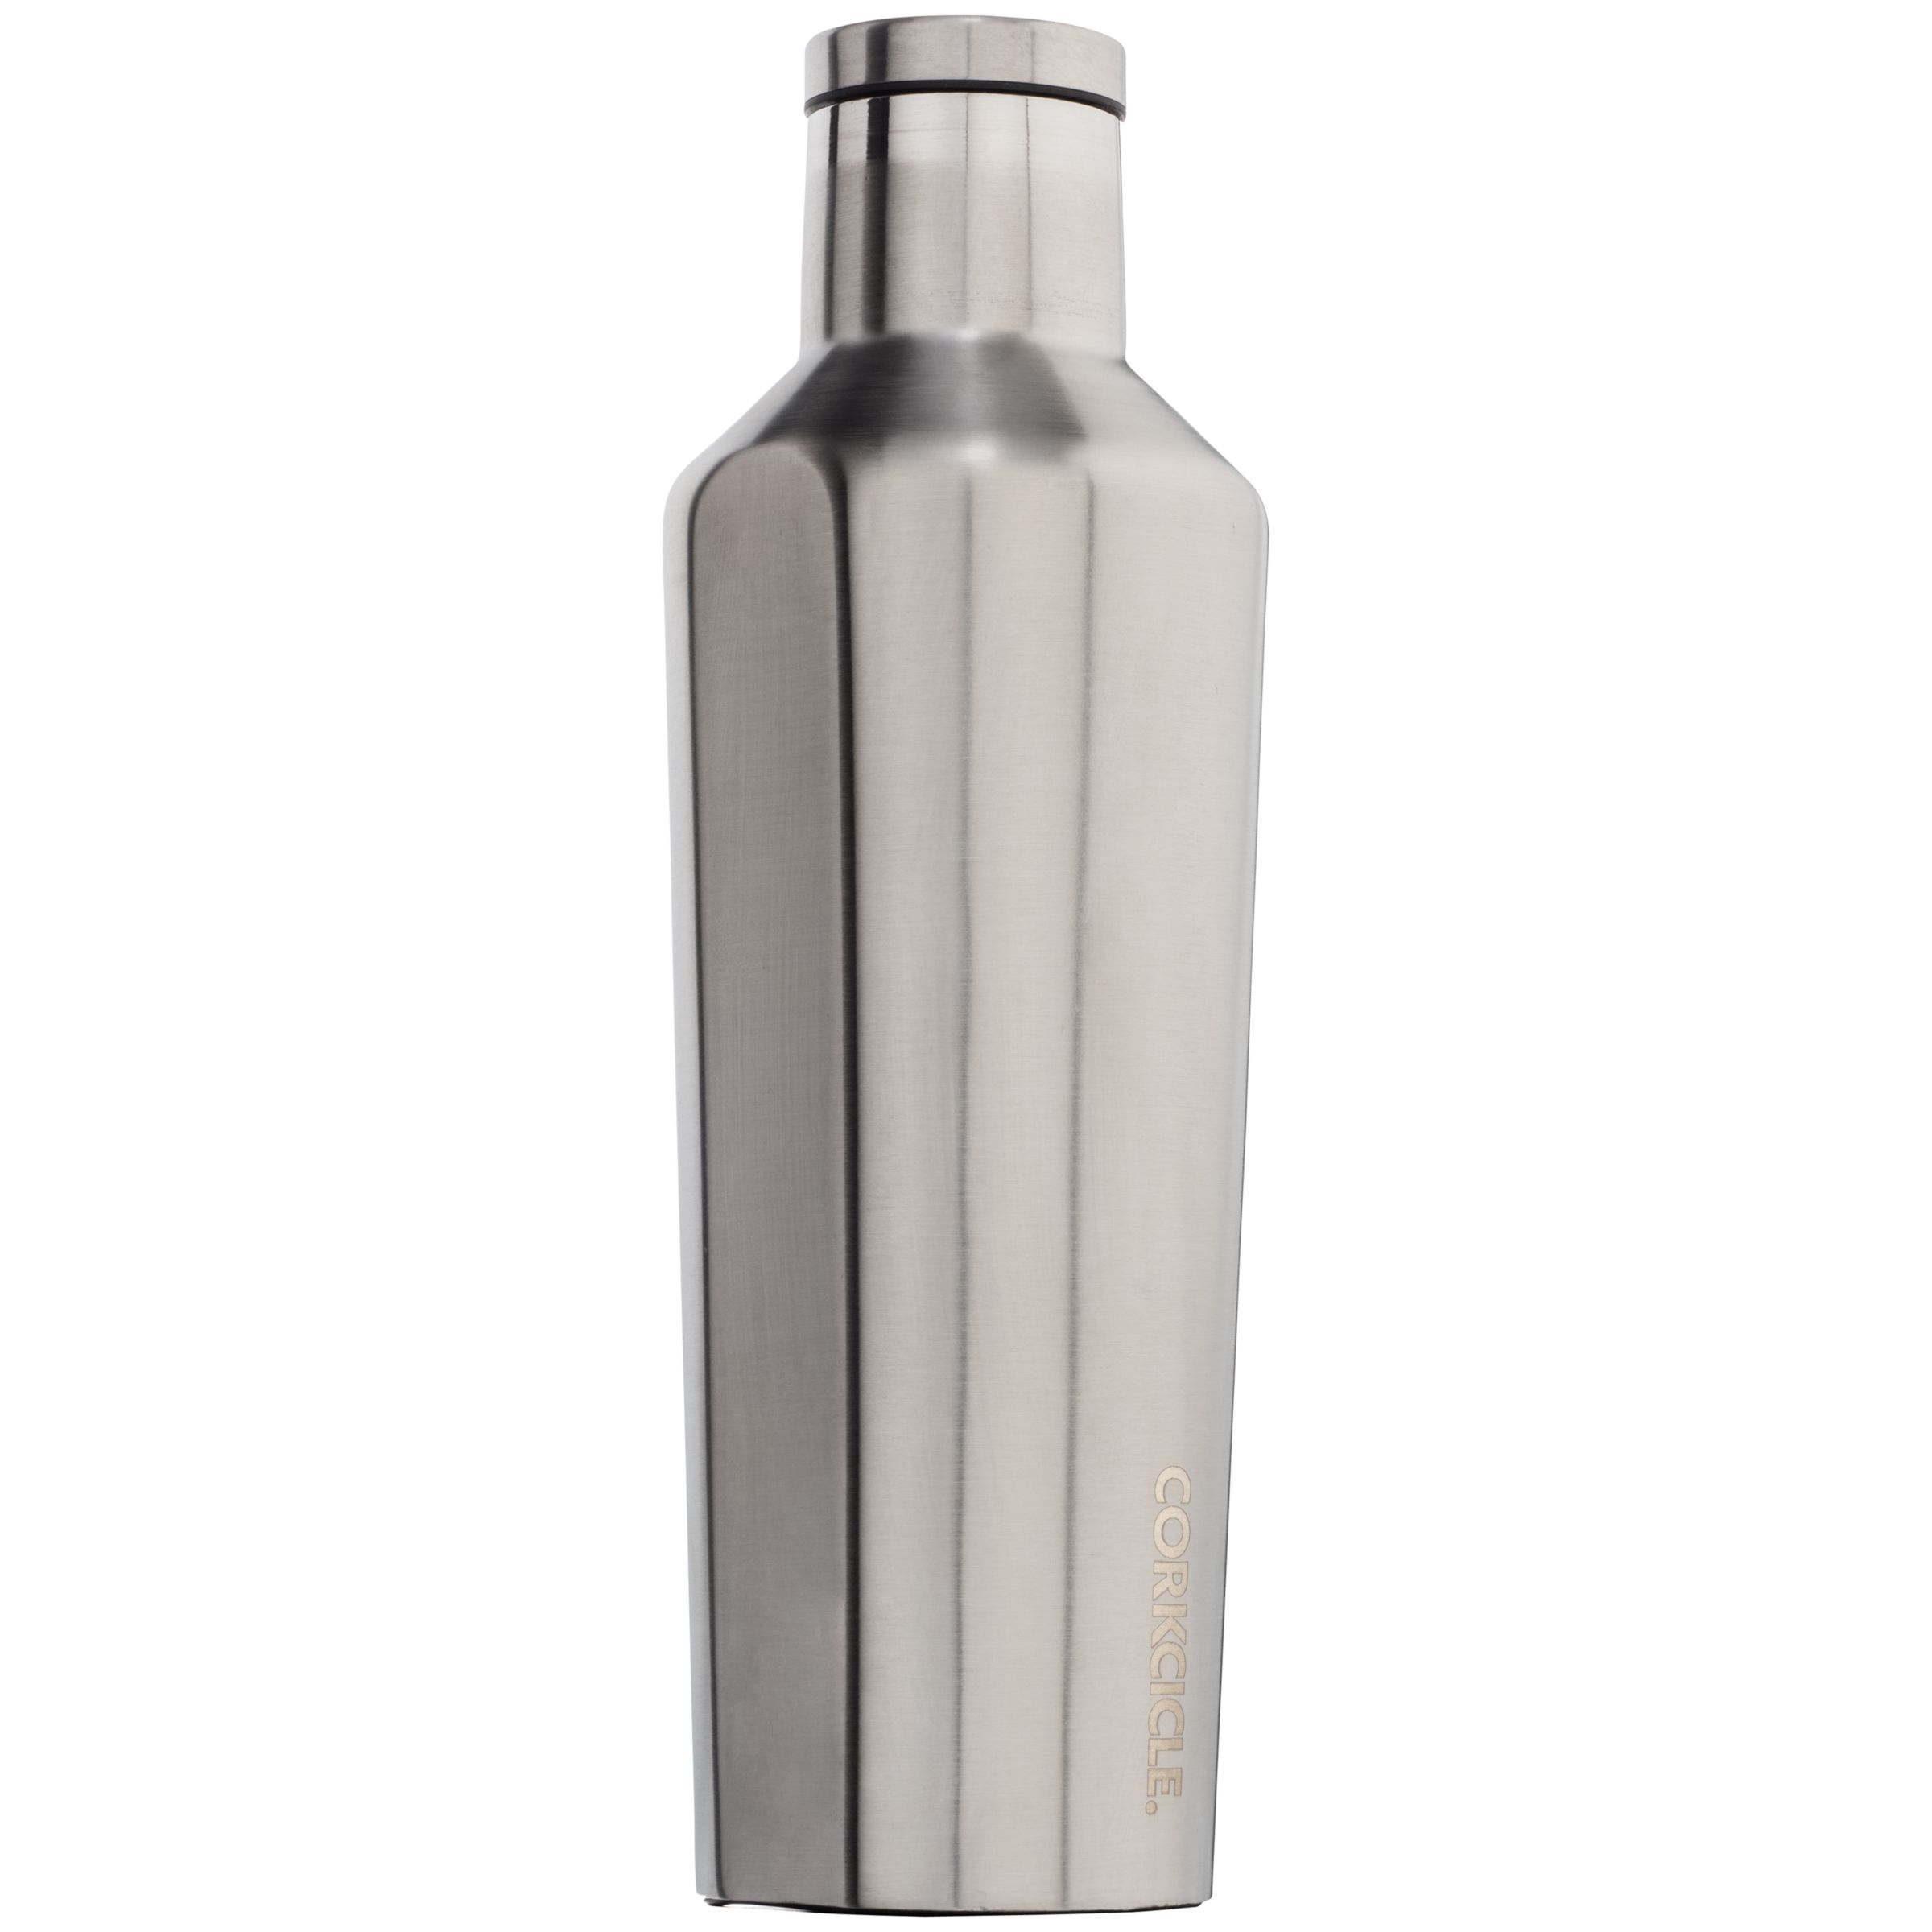 Root 7 Root 7 Corkcicle Flask, Medium